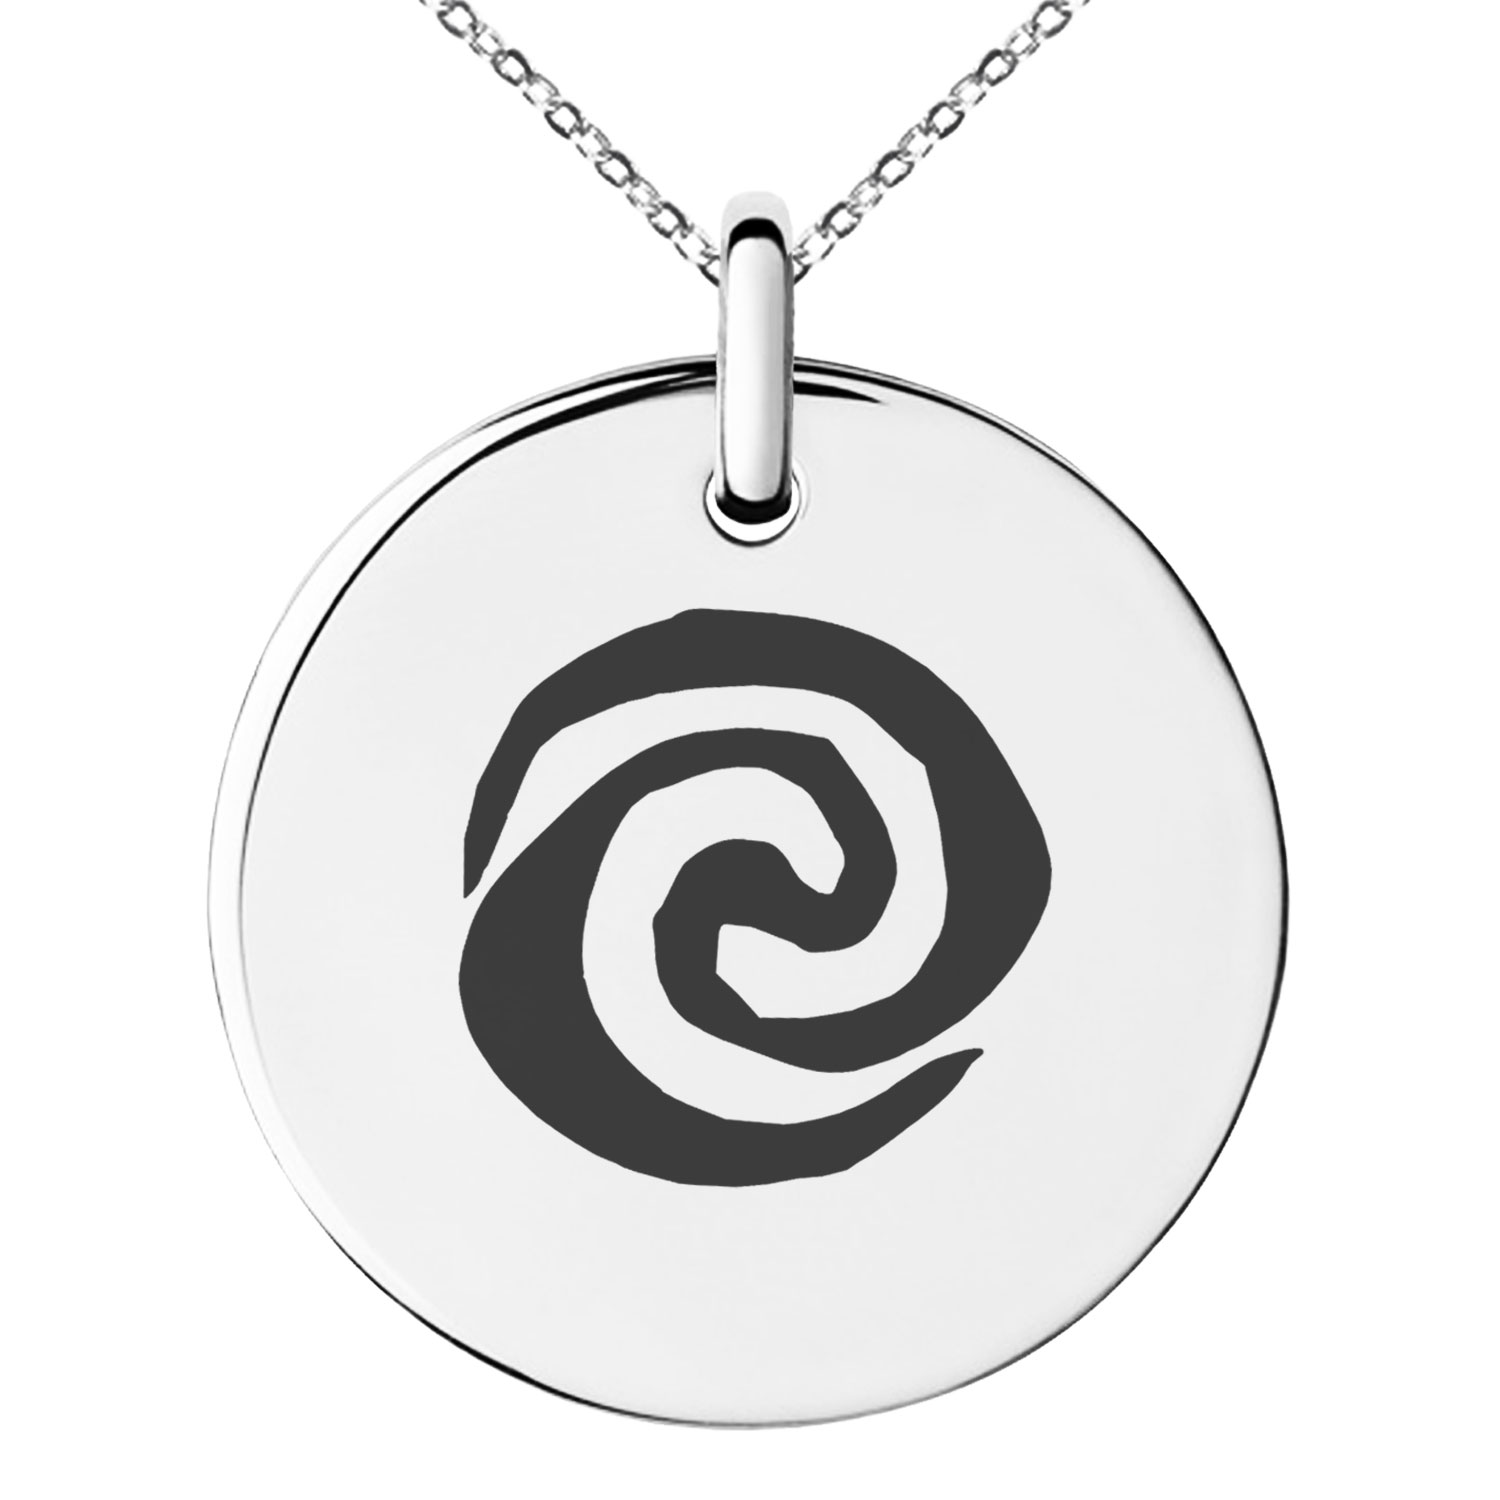 Stainless Steel Disney Moana Water Swirl Logo Engraved Small Medallion Circle Charm Pendant Necklace